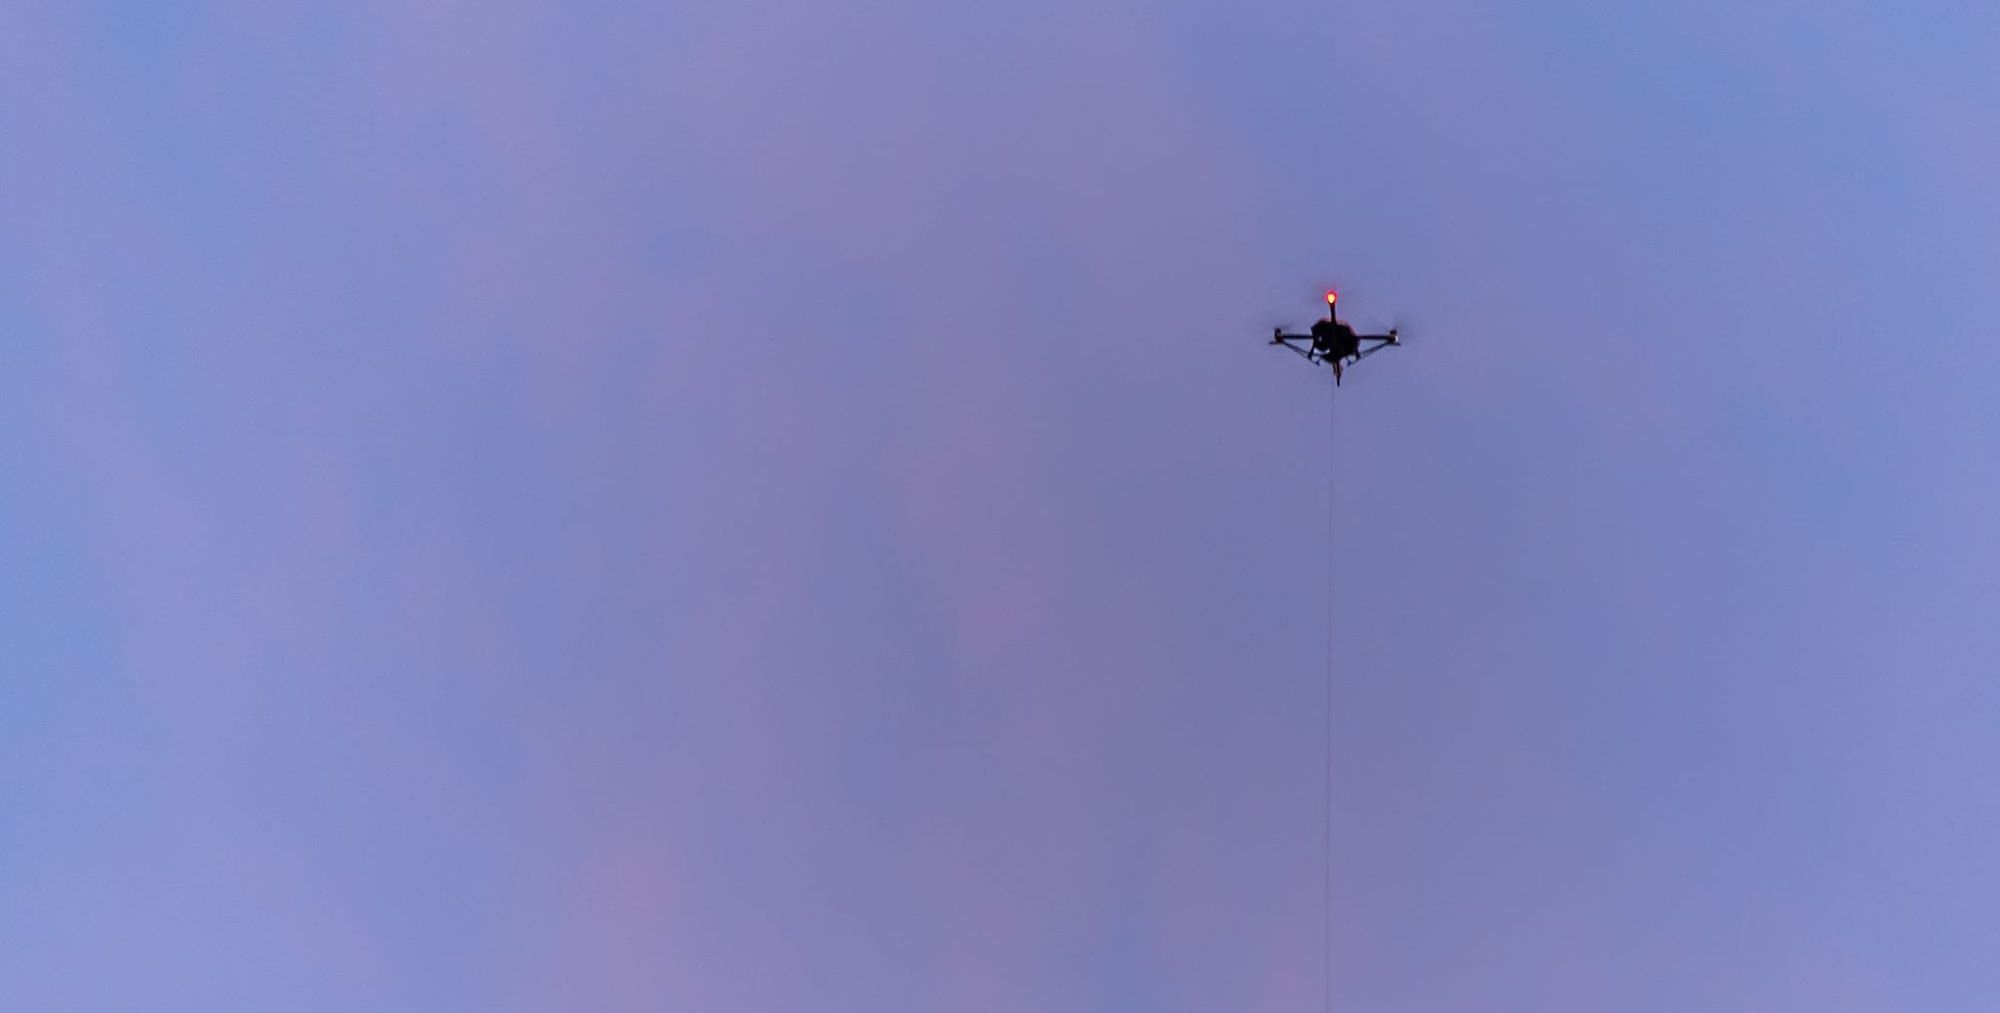 Tethered drone seen near protests in White House area